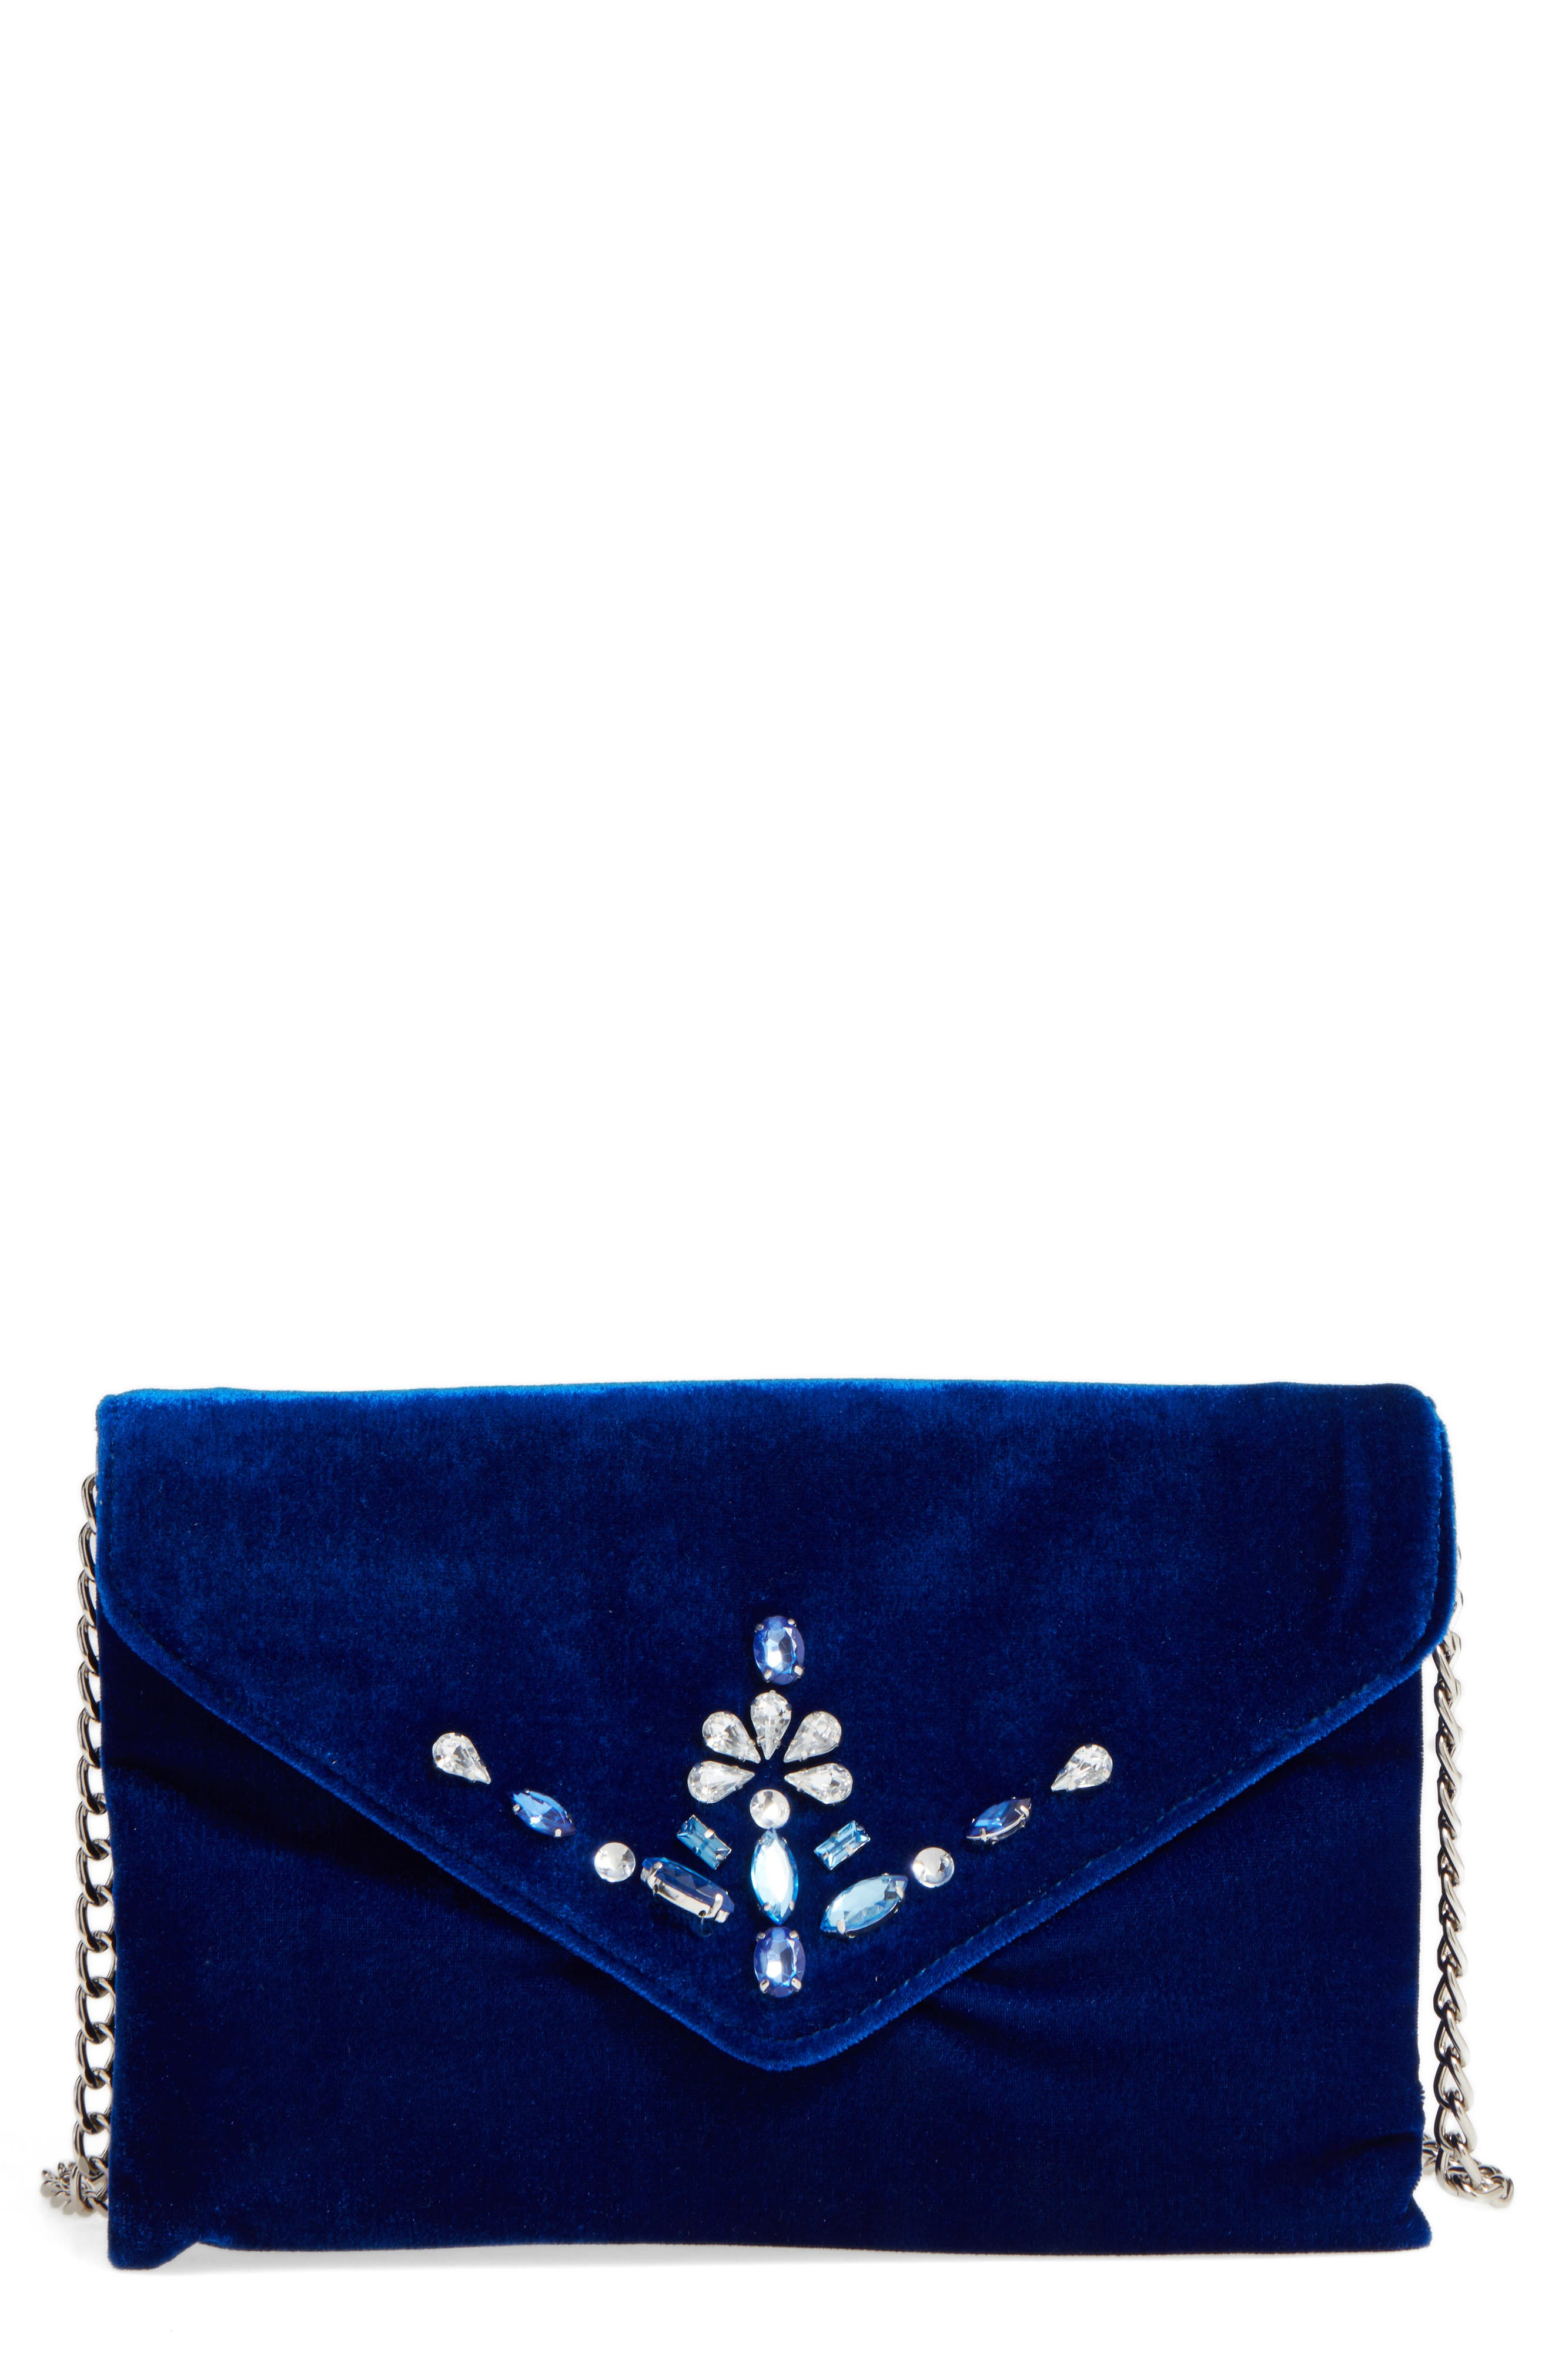 Alternate Image 1 Selected - BP. Jeweled Flap Clutch